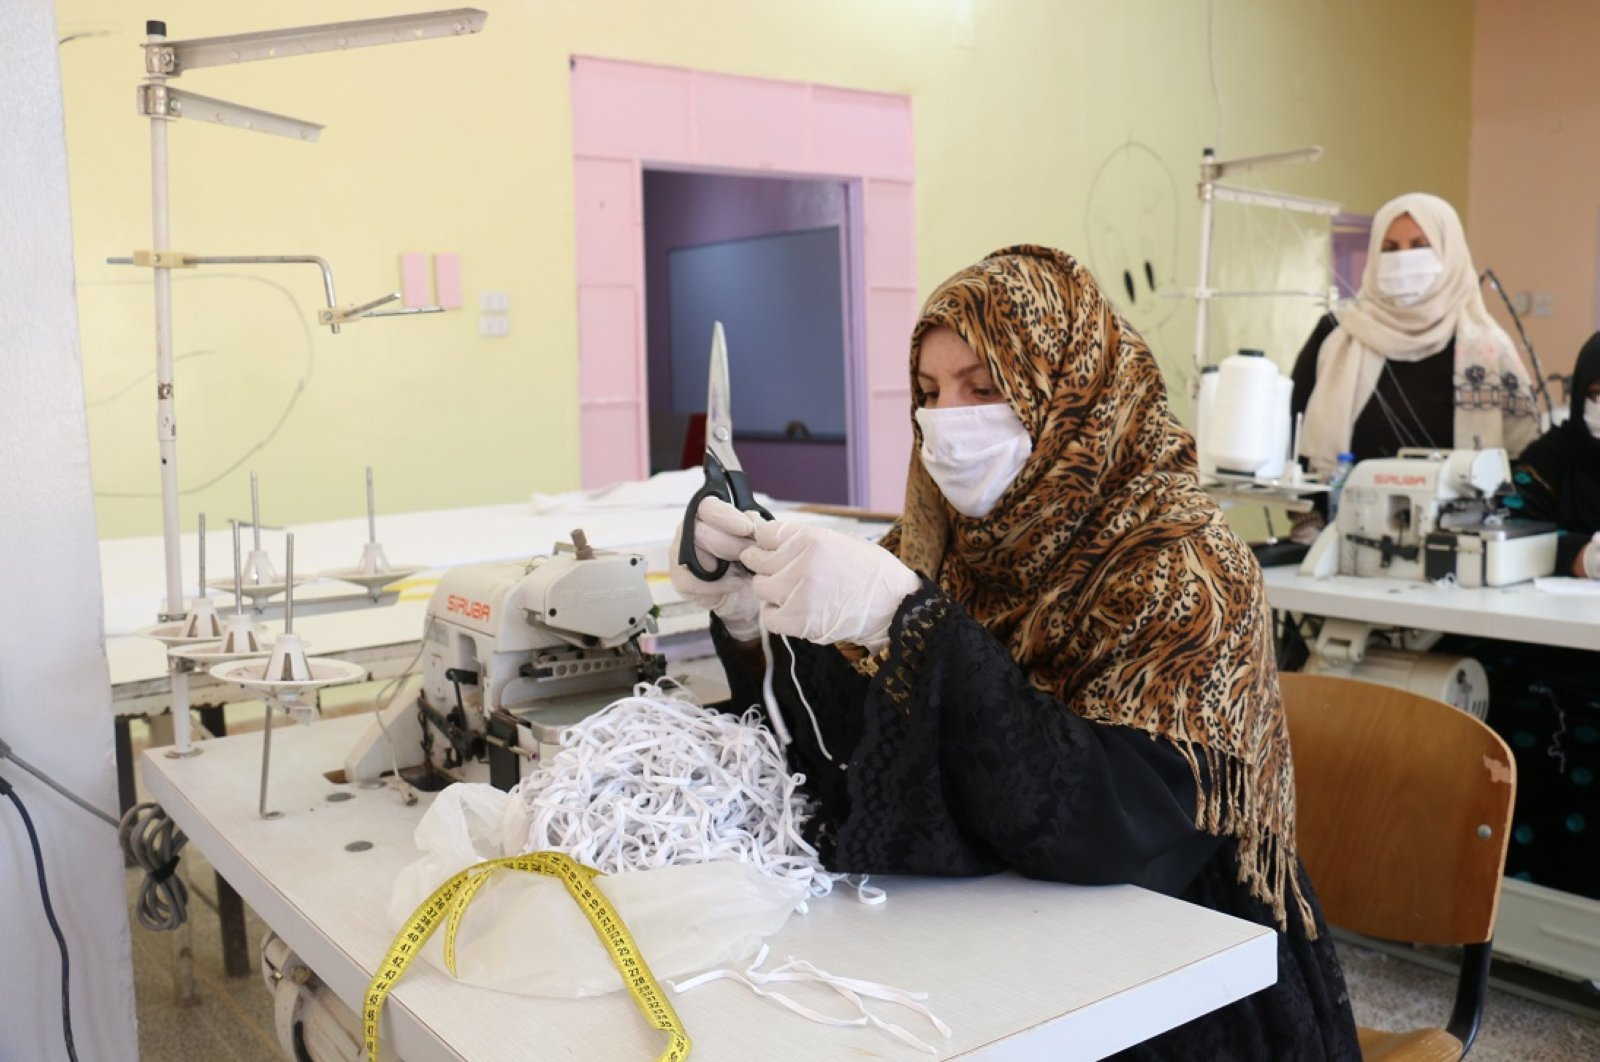 1,000 masks will be produced by 12 trainee women every day at a workshop in Ras al-Ayn as part of measures against coronavirus, Thursday, April 9, 2020.